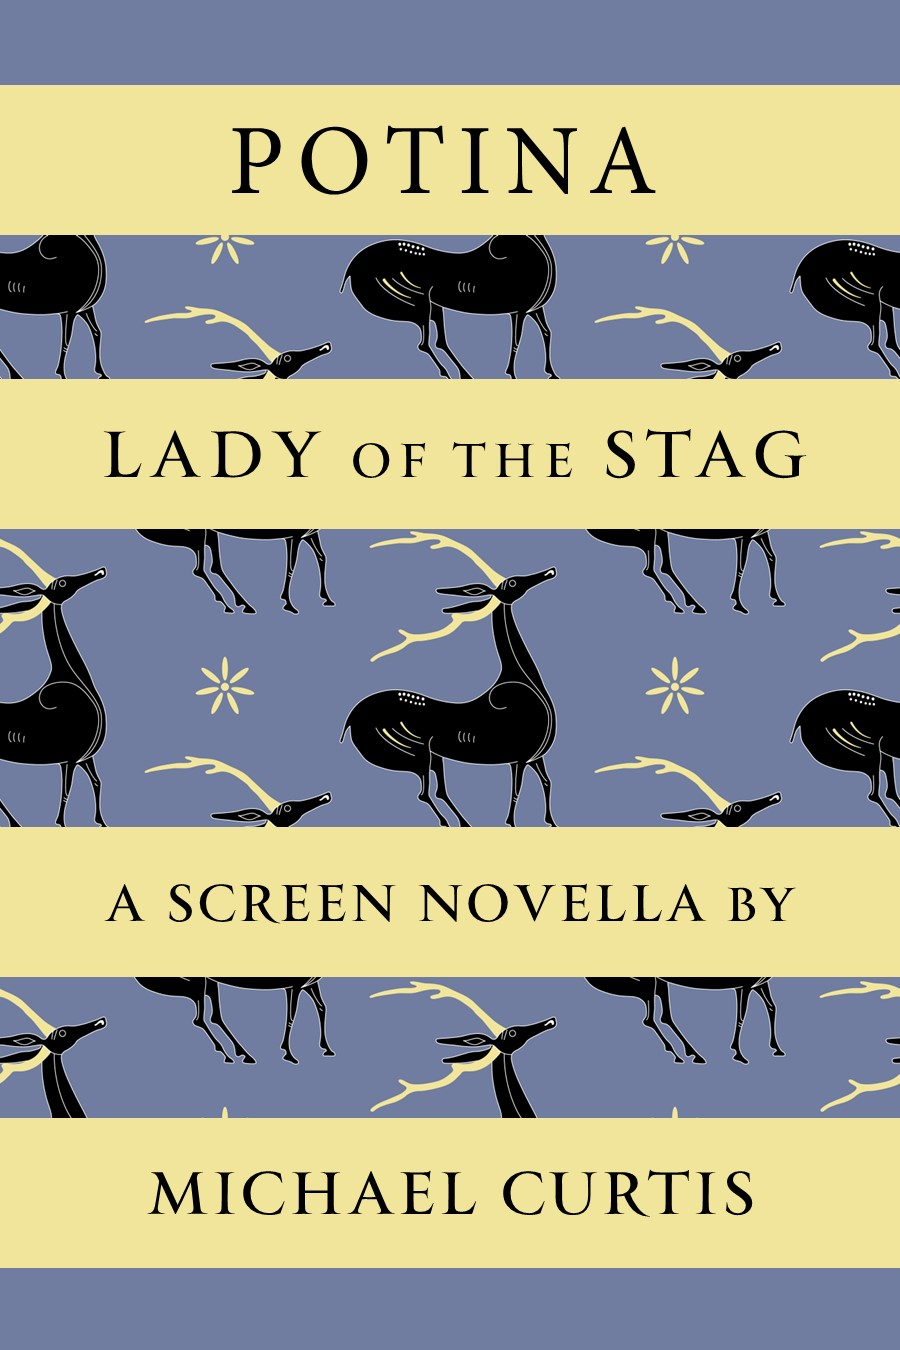 https://secureservercdn.net/198.71.233.51/fh1.fab.myftpupload.com/wp-content/uploads/2021/03/18.-Potina-Lady-of-the-Stag-Front-Cover.jpg